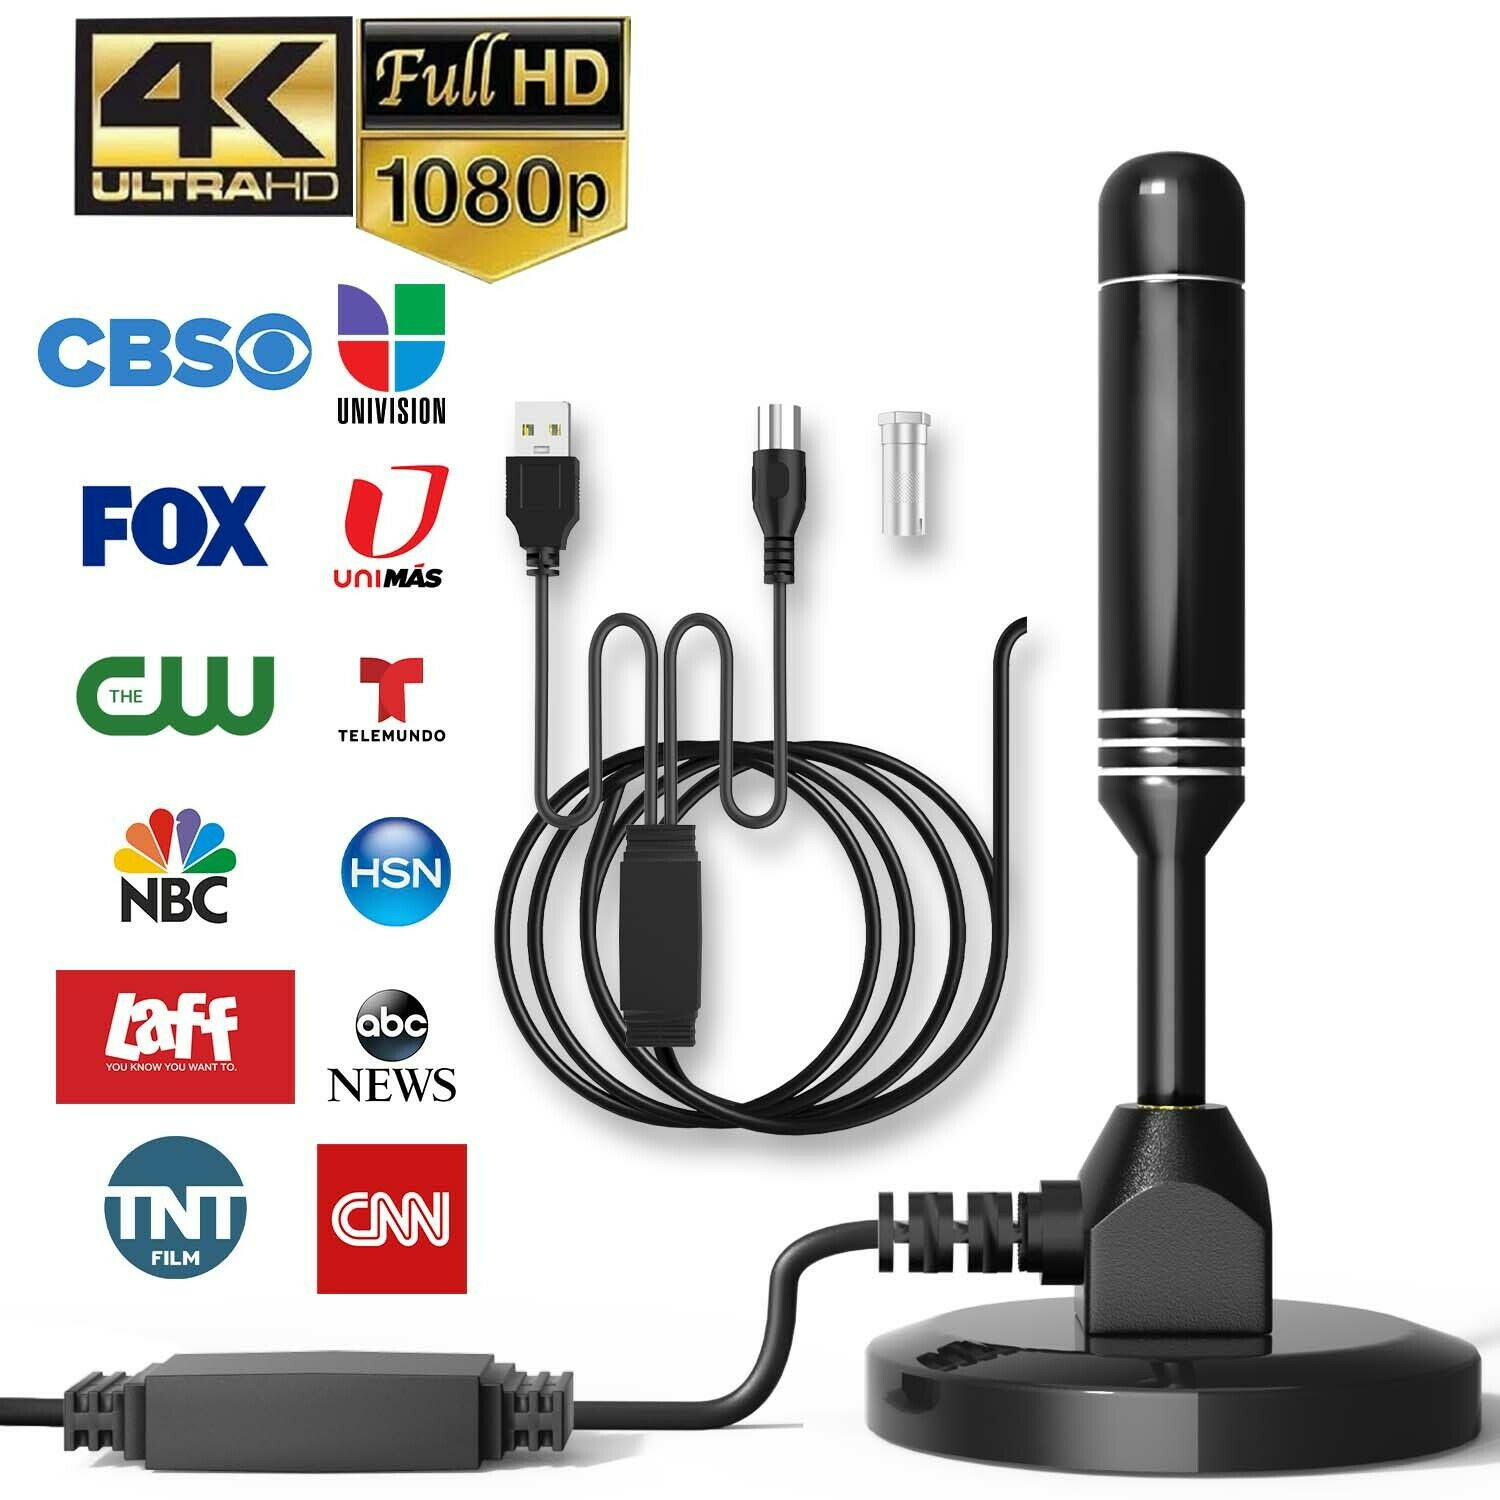 3000 Miles Upgraded TV Antenna HDTV Amplified Digital 4K 1080P W/ Magnetic Base. Available Now for 13.95